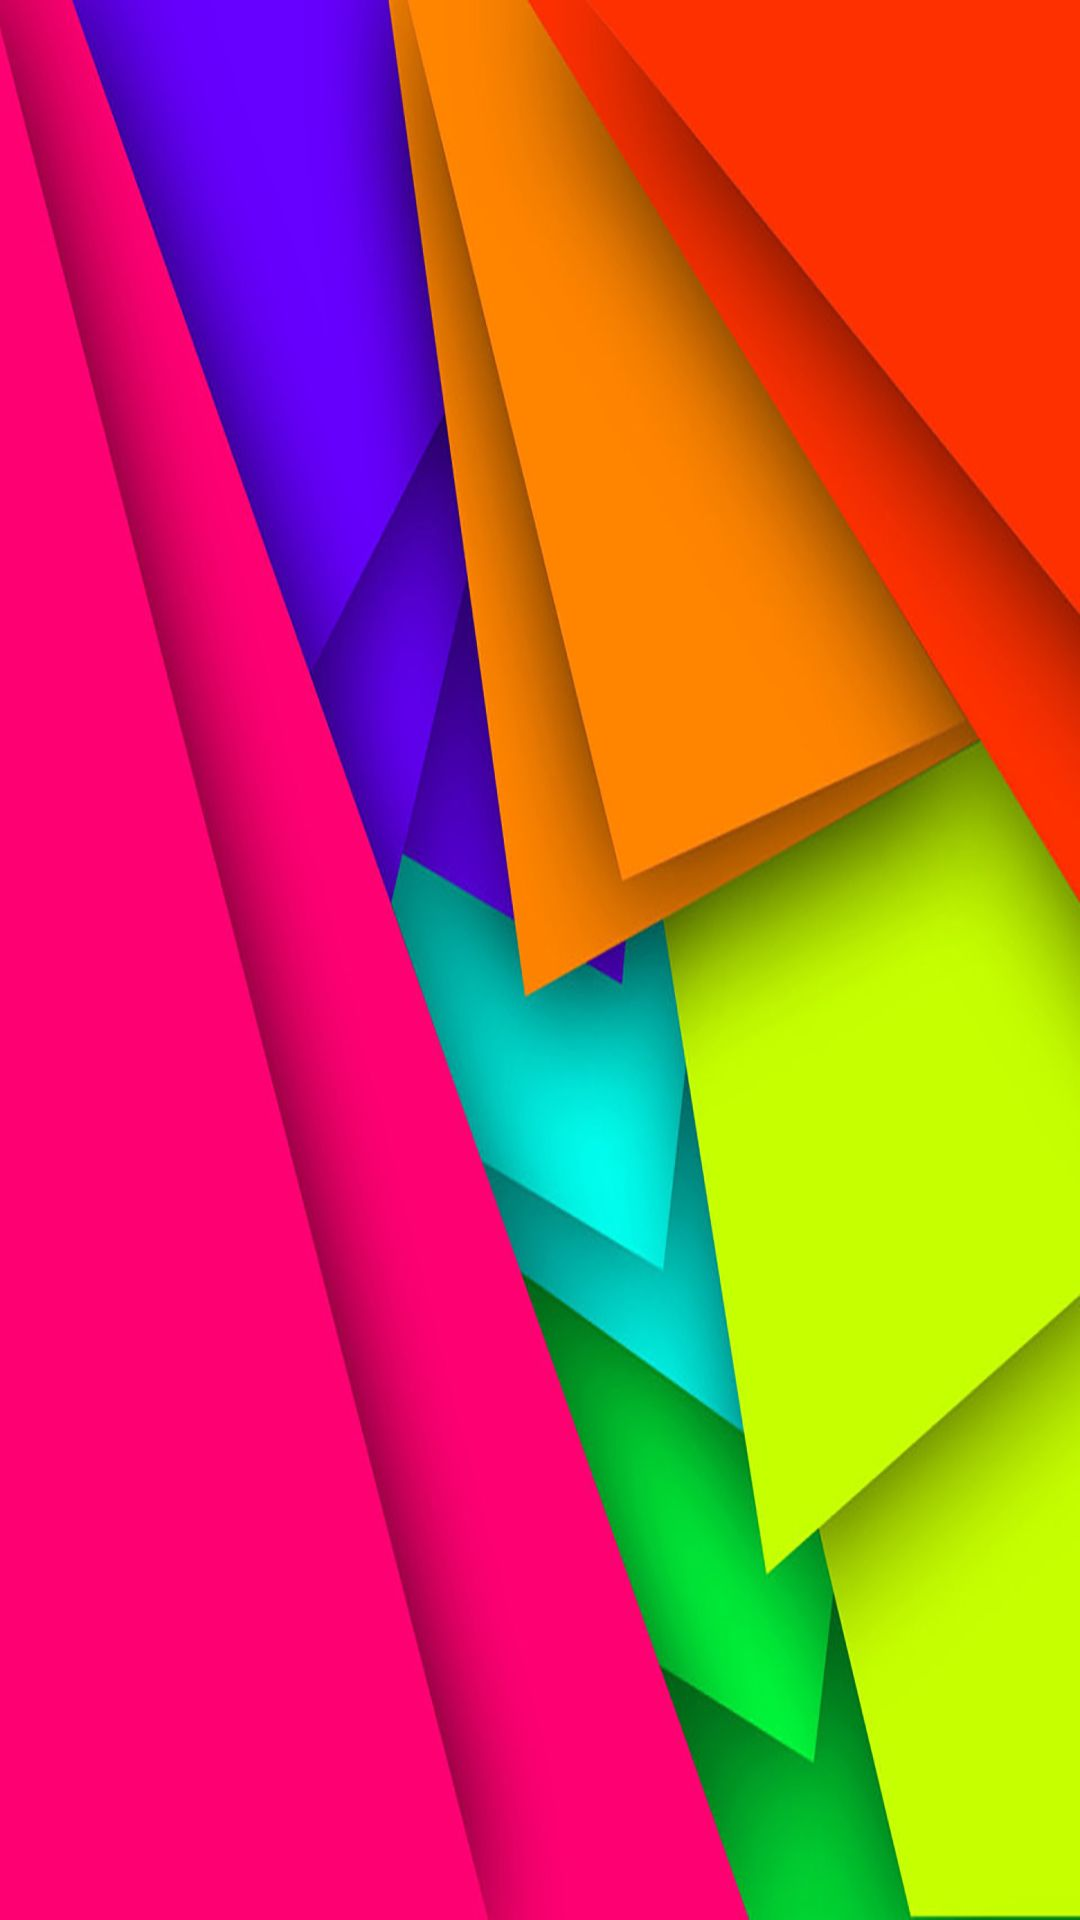 Free Colorful Geometric Wallpaper: Bold Colorful Abstract Art Wallpaper